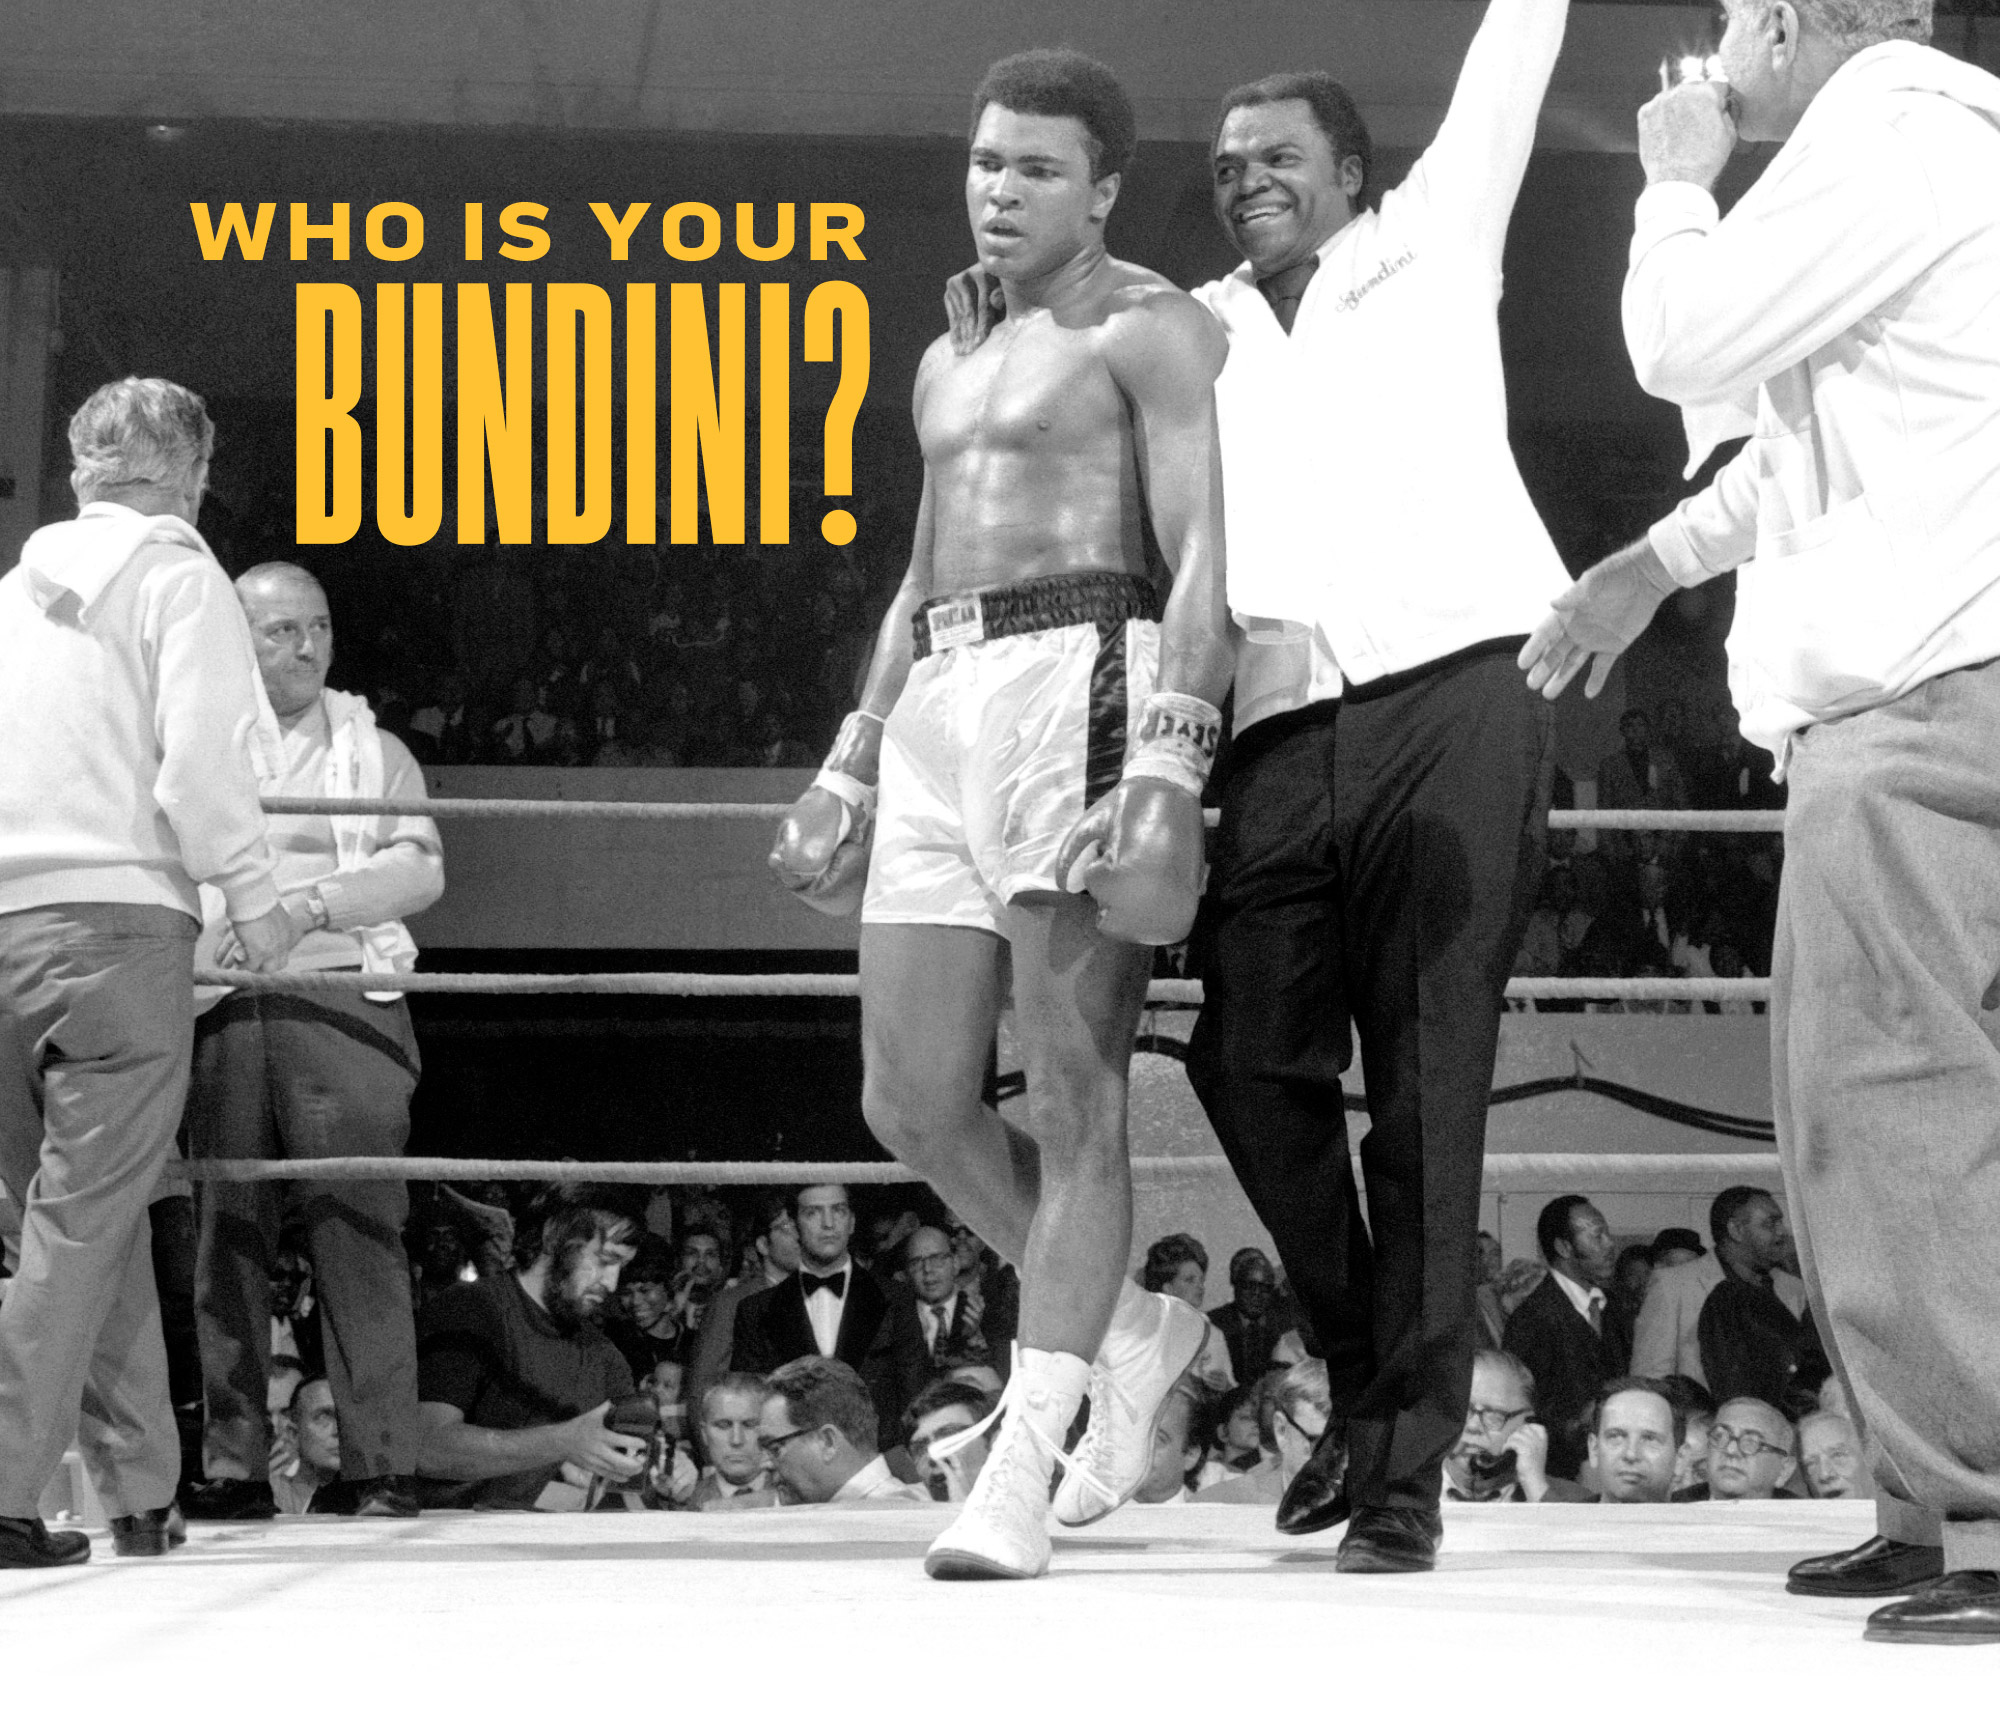 Who Is Your Bundini?